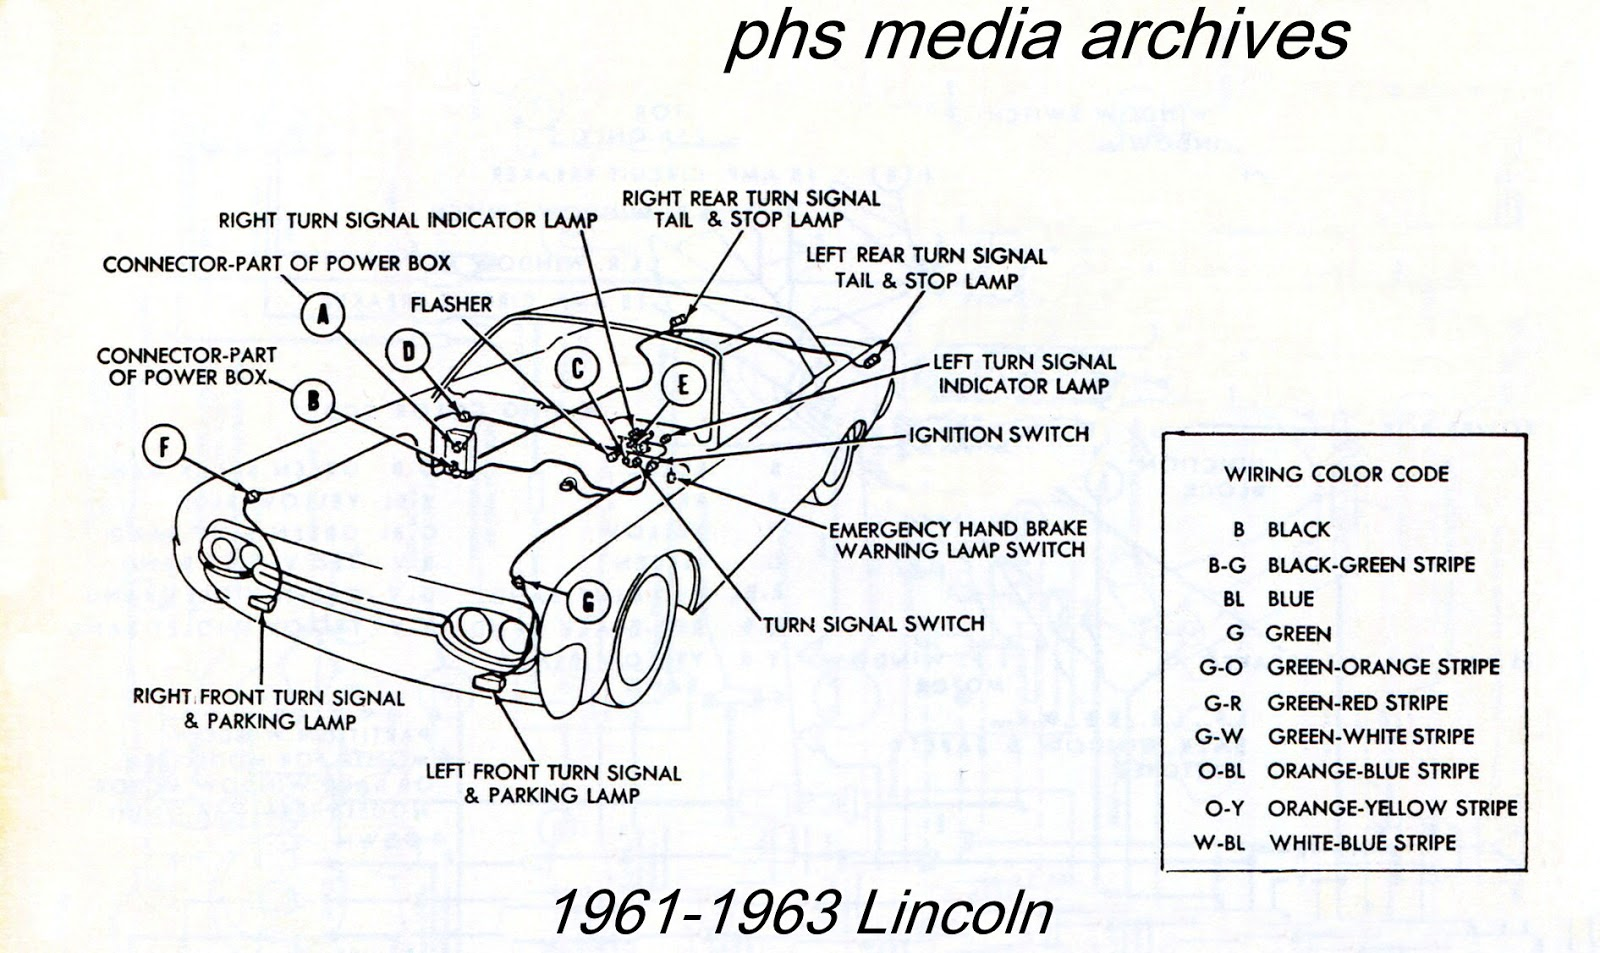 Lincoln Fog Lights Wiring Diagram Trusted Diagrams 2003 Town Car 2018 Example Tech Series 1960 1964 Phscollectorcarworld Rh Blogspot Com Light Simple